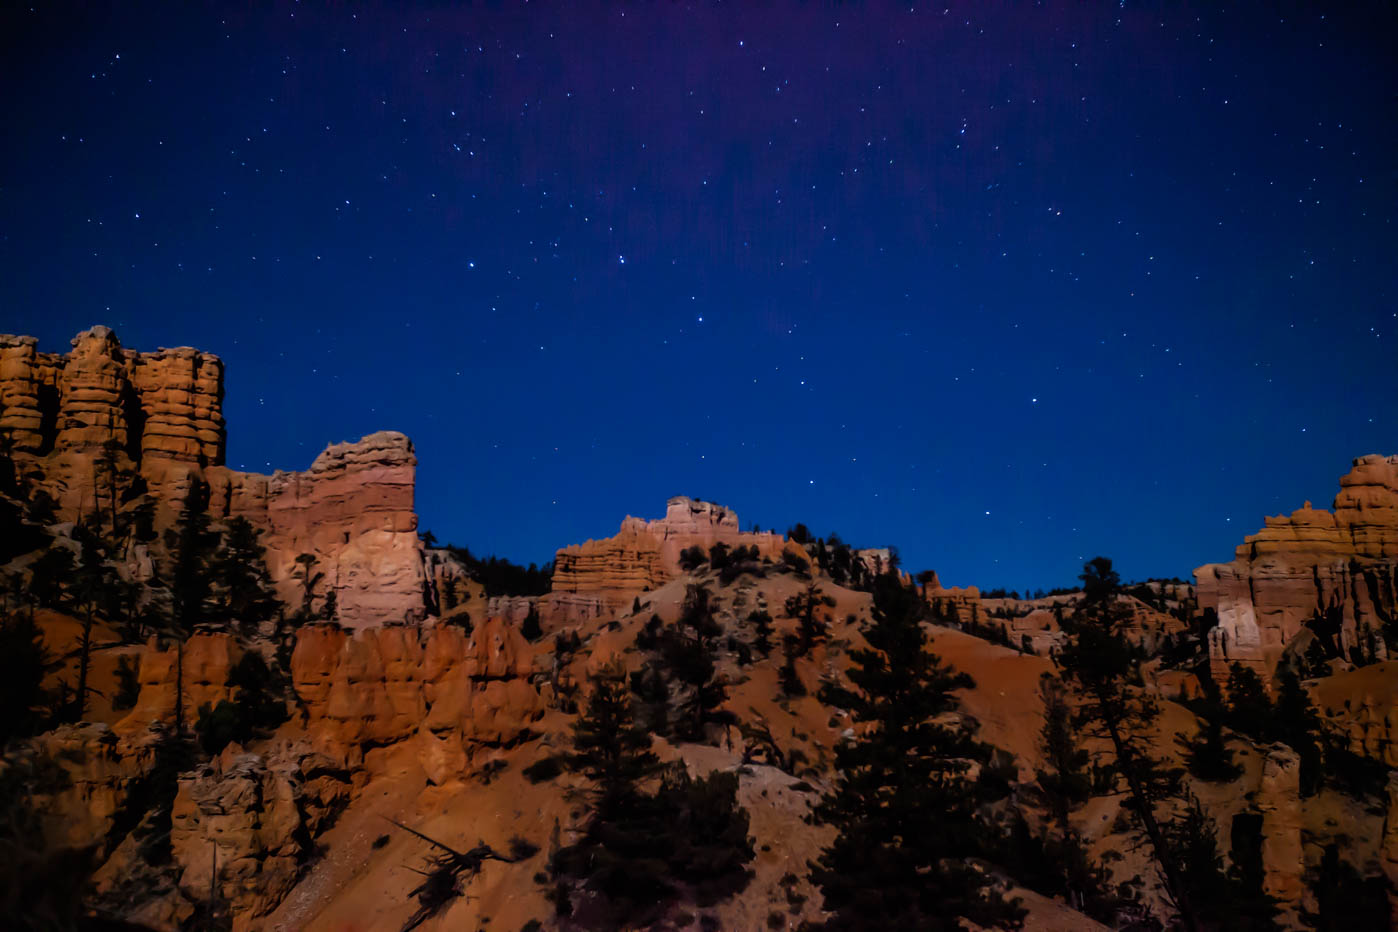 Stargazing on the Fairyland Trail in Bryce Canyon National Park #vezzaniphotography